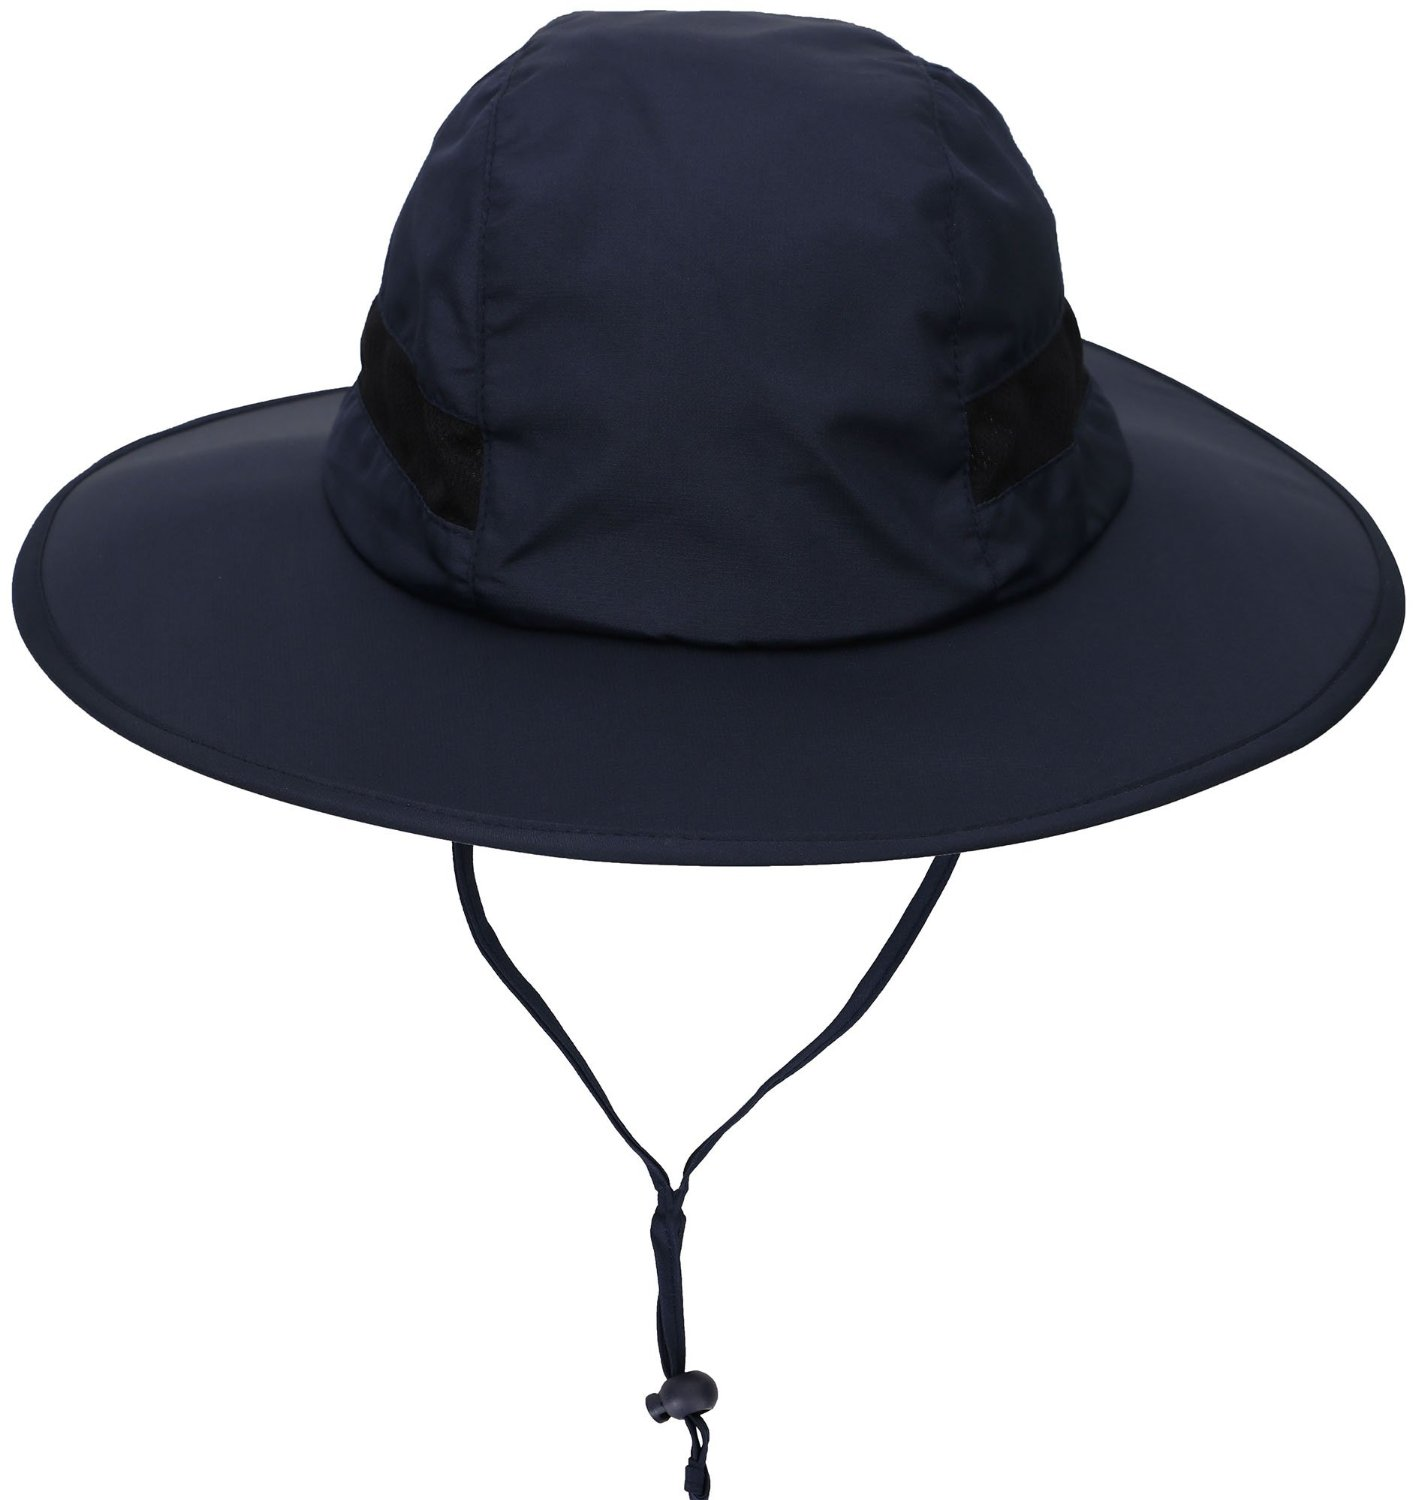 76c9b6e42d3 Get Quotations · Waterproof Outdoor Bucket Hat SPF 50+ UV Protection Safari Sun  Cap Boonie Fishing Hiking Hat